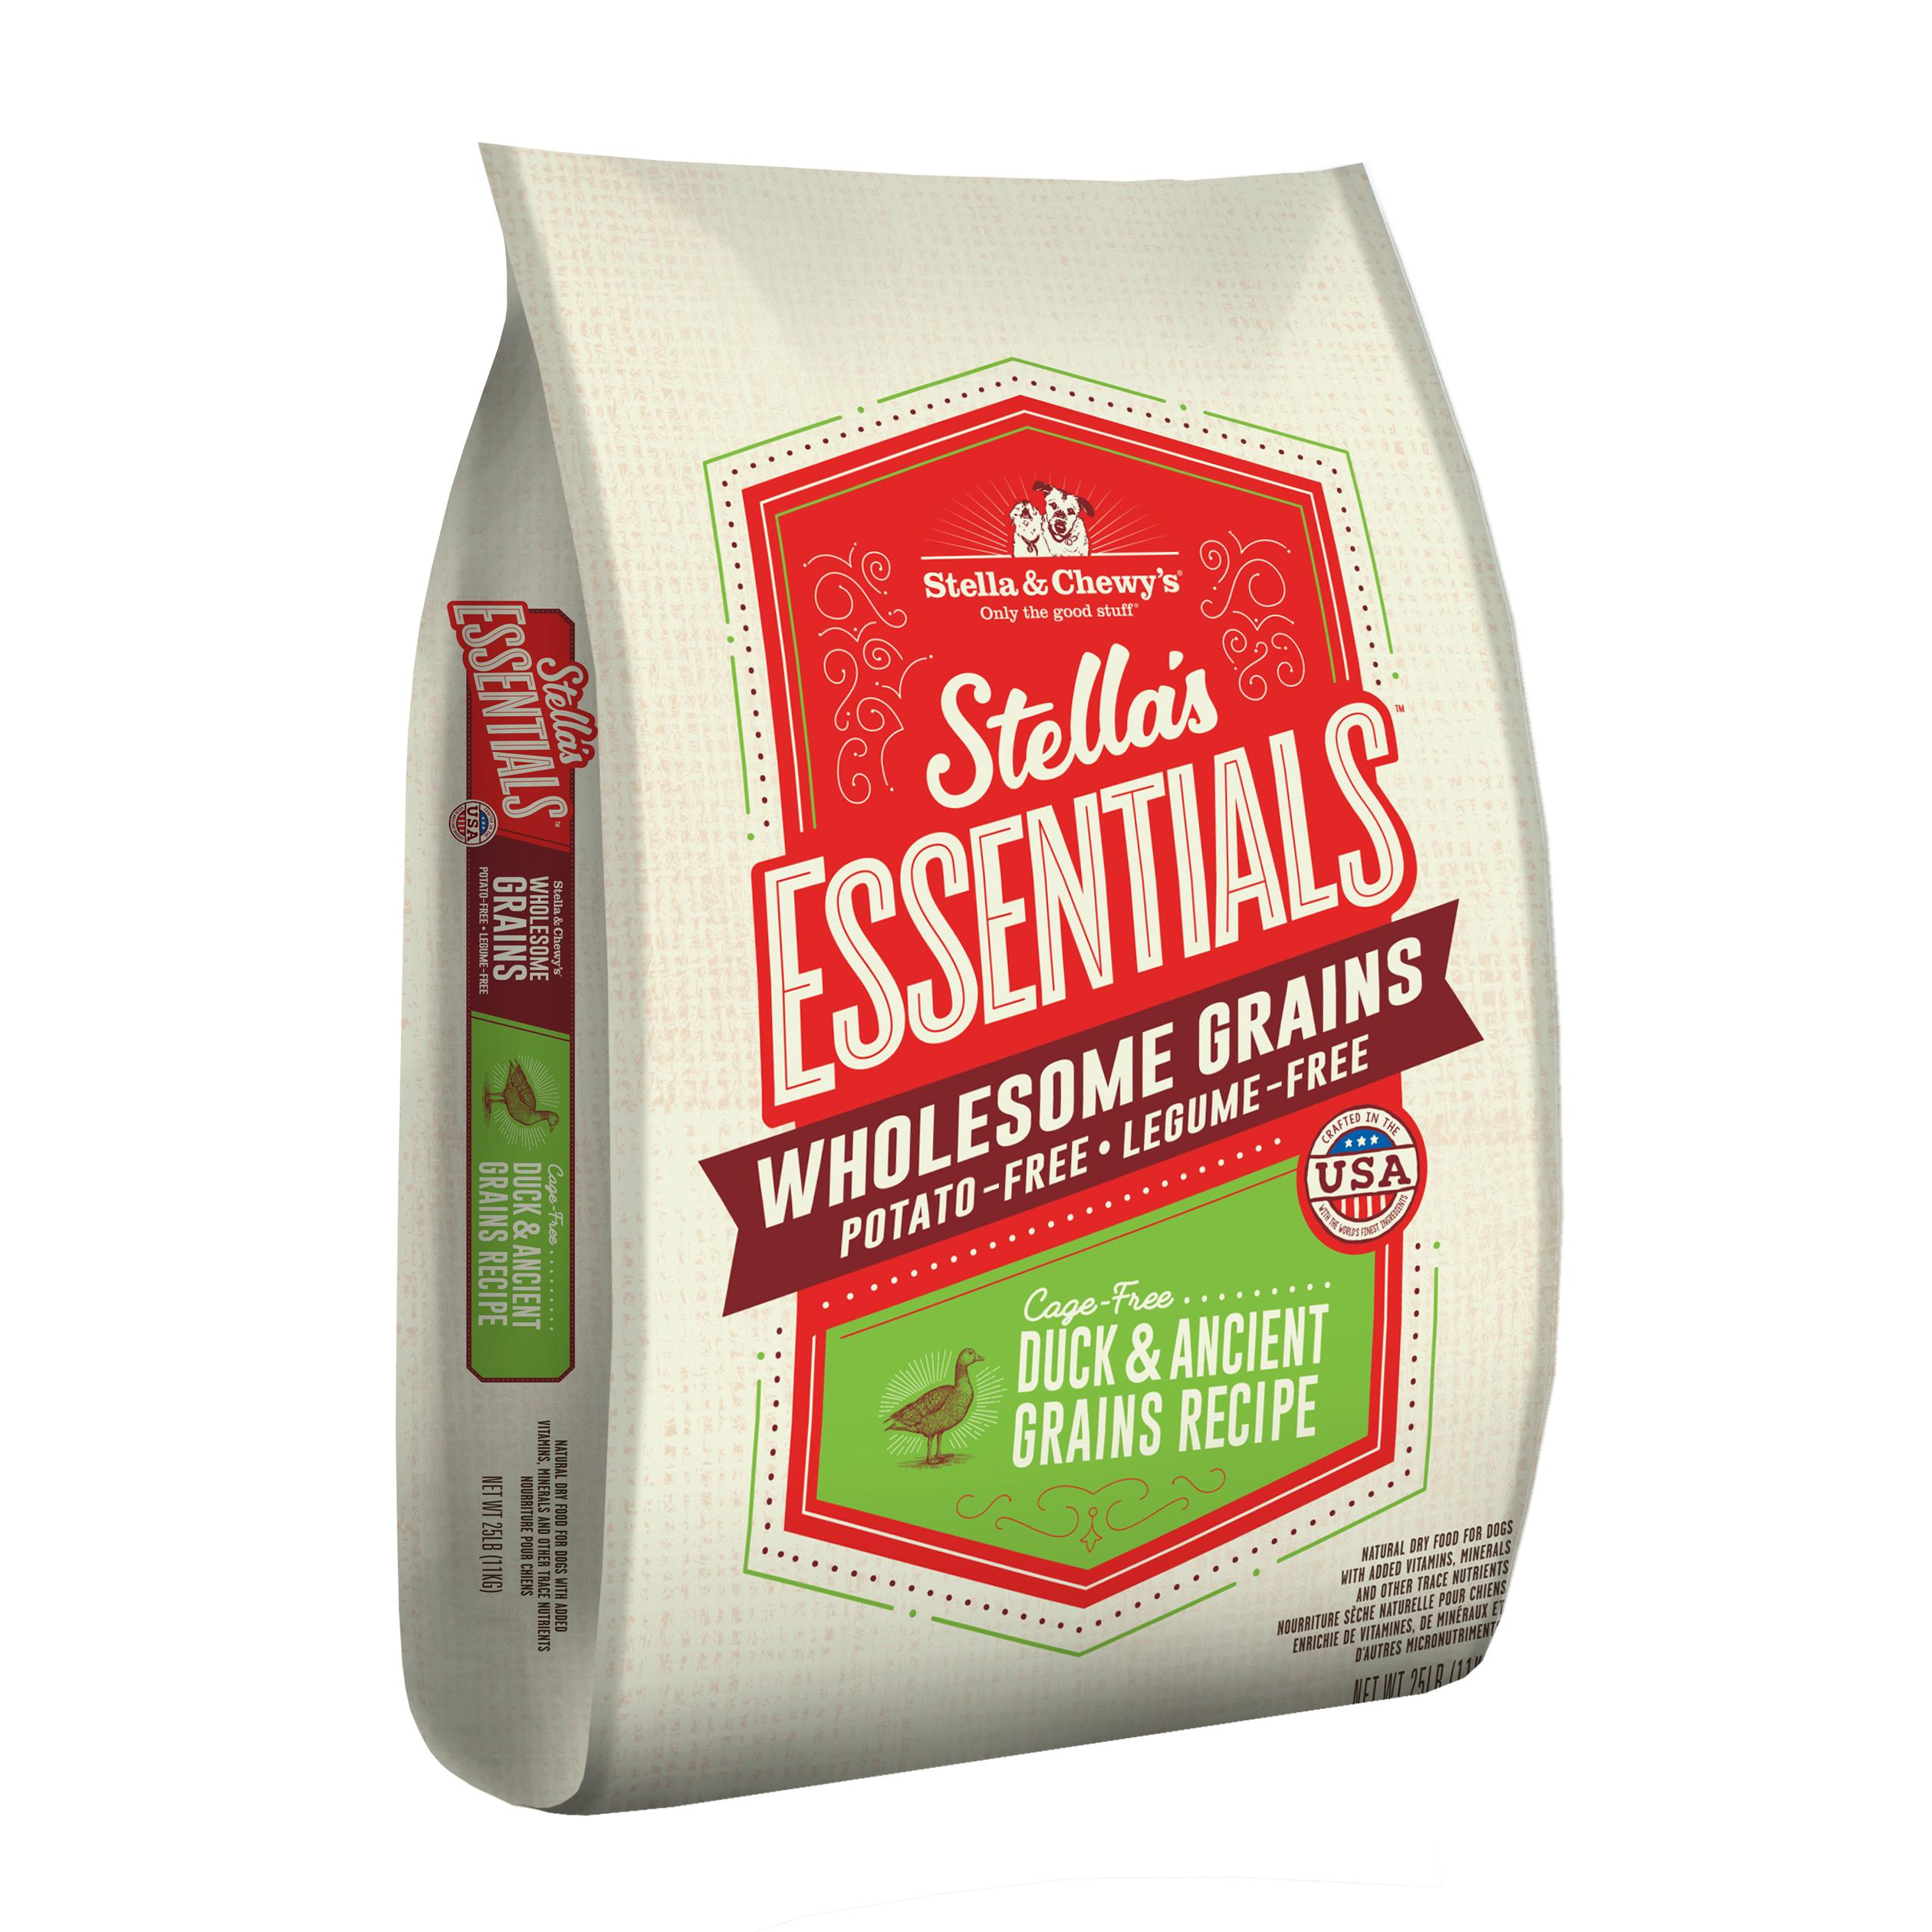 Stella & Chewy's Essentials Wholesome Grains Duck & Ancient Grains Dry Dog Food, 25-lb